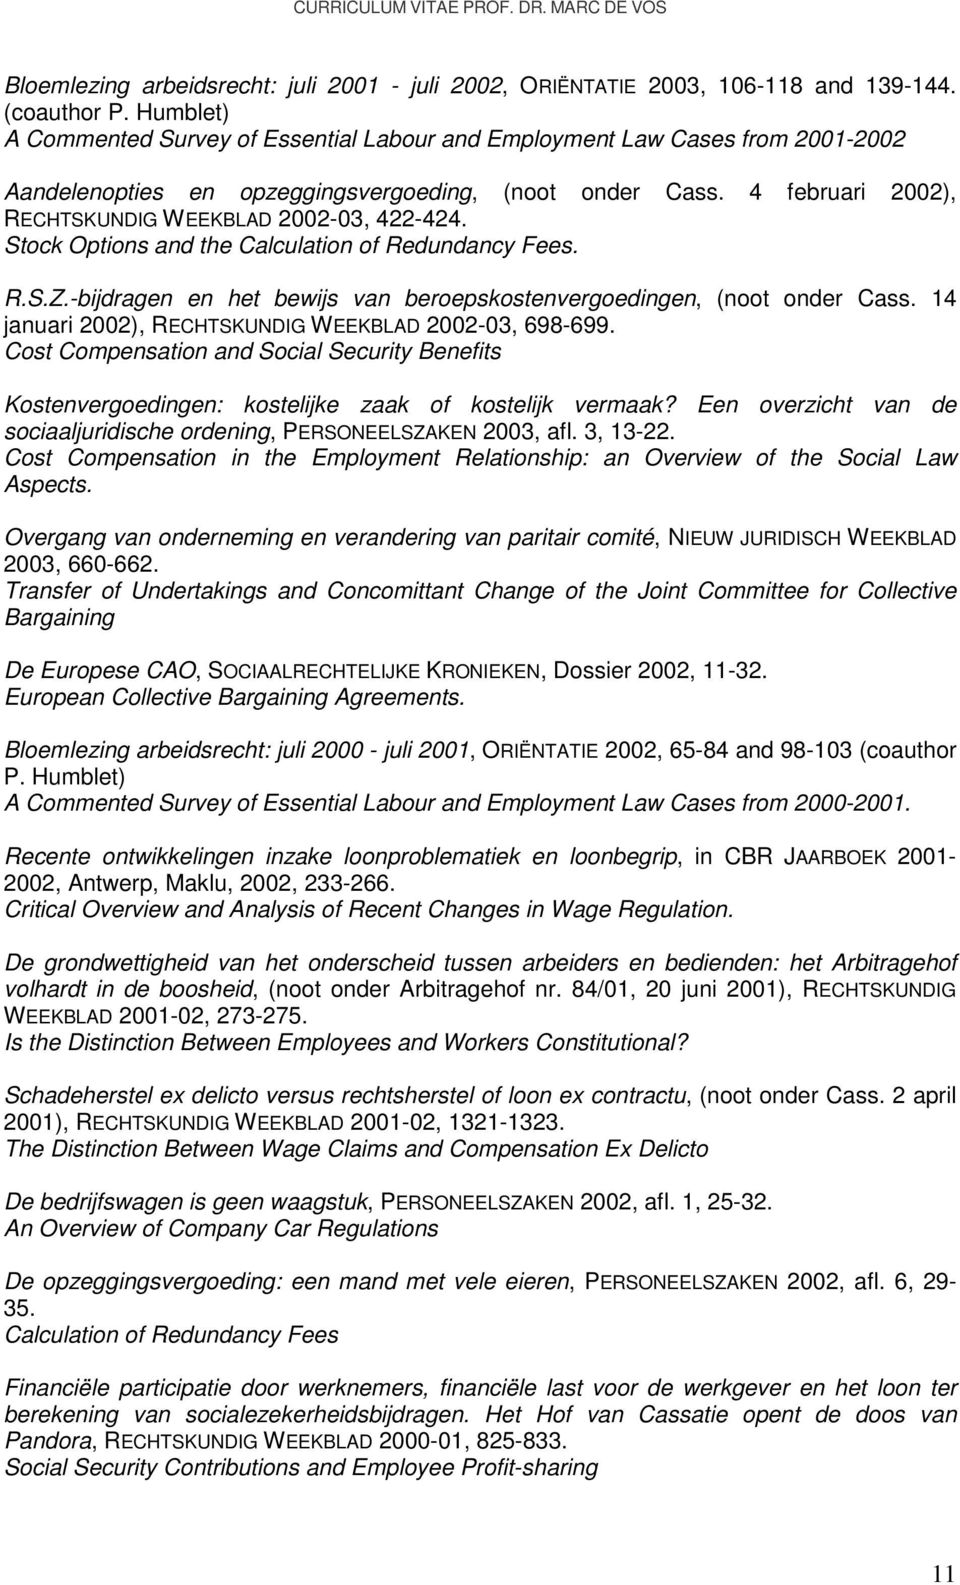 4 februari 2002), RECHTSKUNDIG WEEKBLAD 2002-03, 422-424. Stock Options and the Calculation of Redundancy Fees. R.S.Z.-bijdragen en het bewijs van beroepskostenvergoedingen, (noot onder Cass.